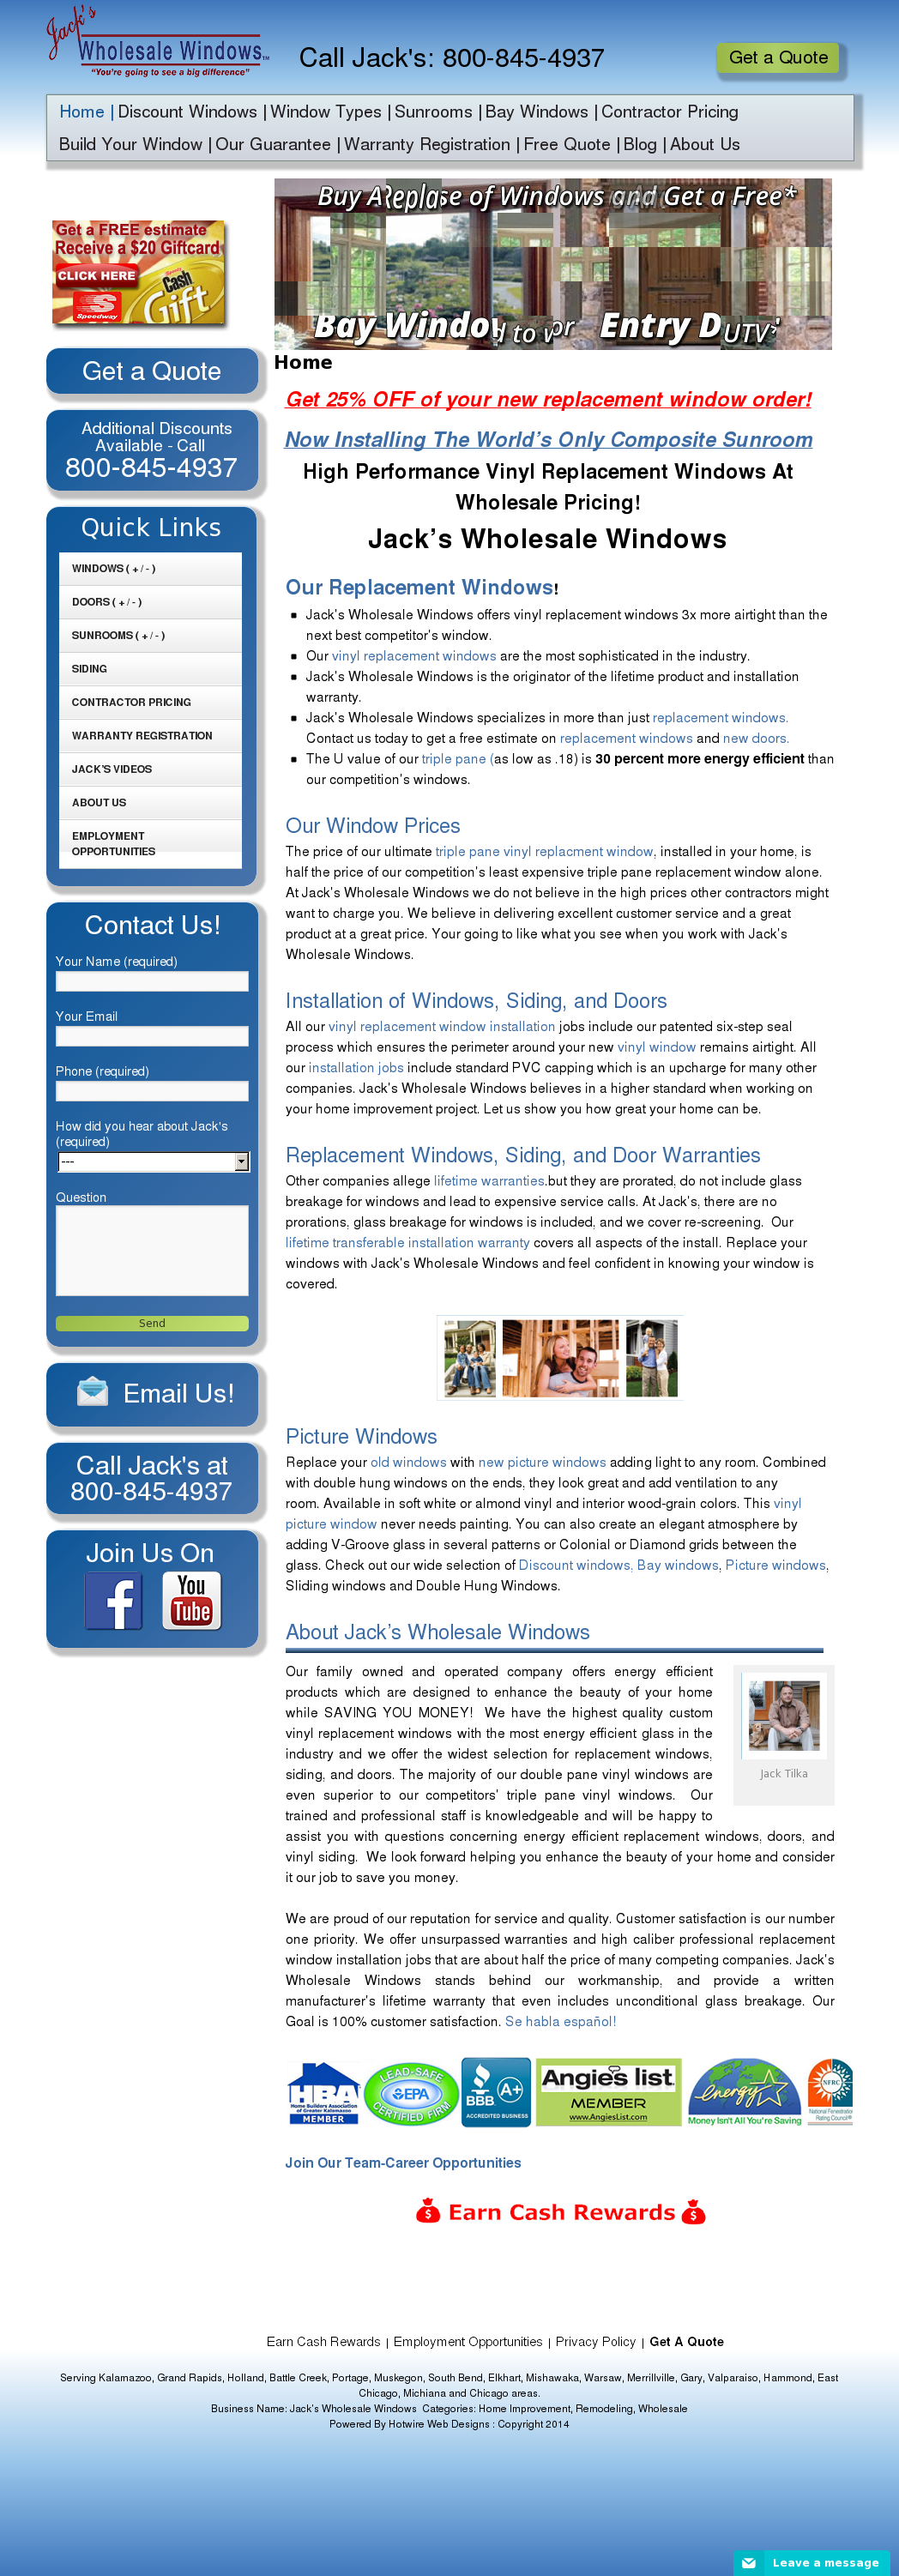 jack s wholesale windows jacks wholesale windows competitors revenue and employees owler company profile